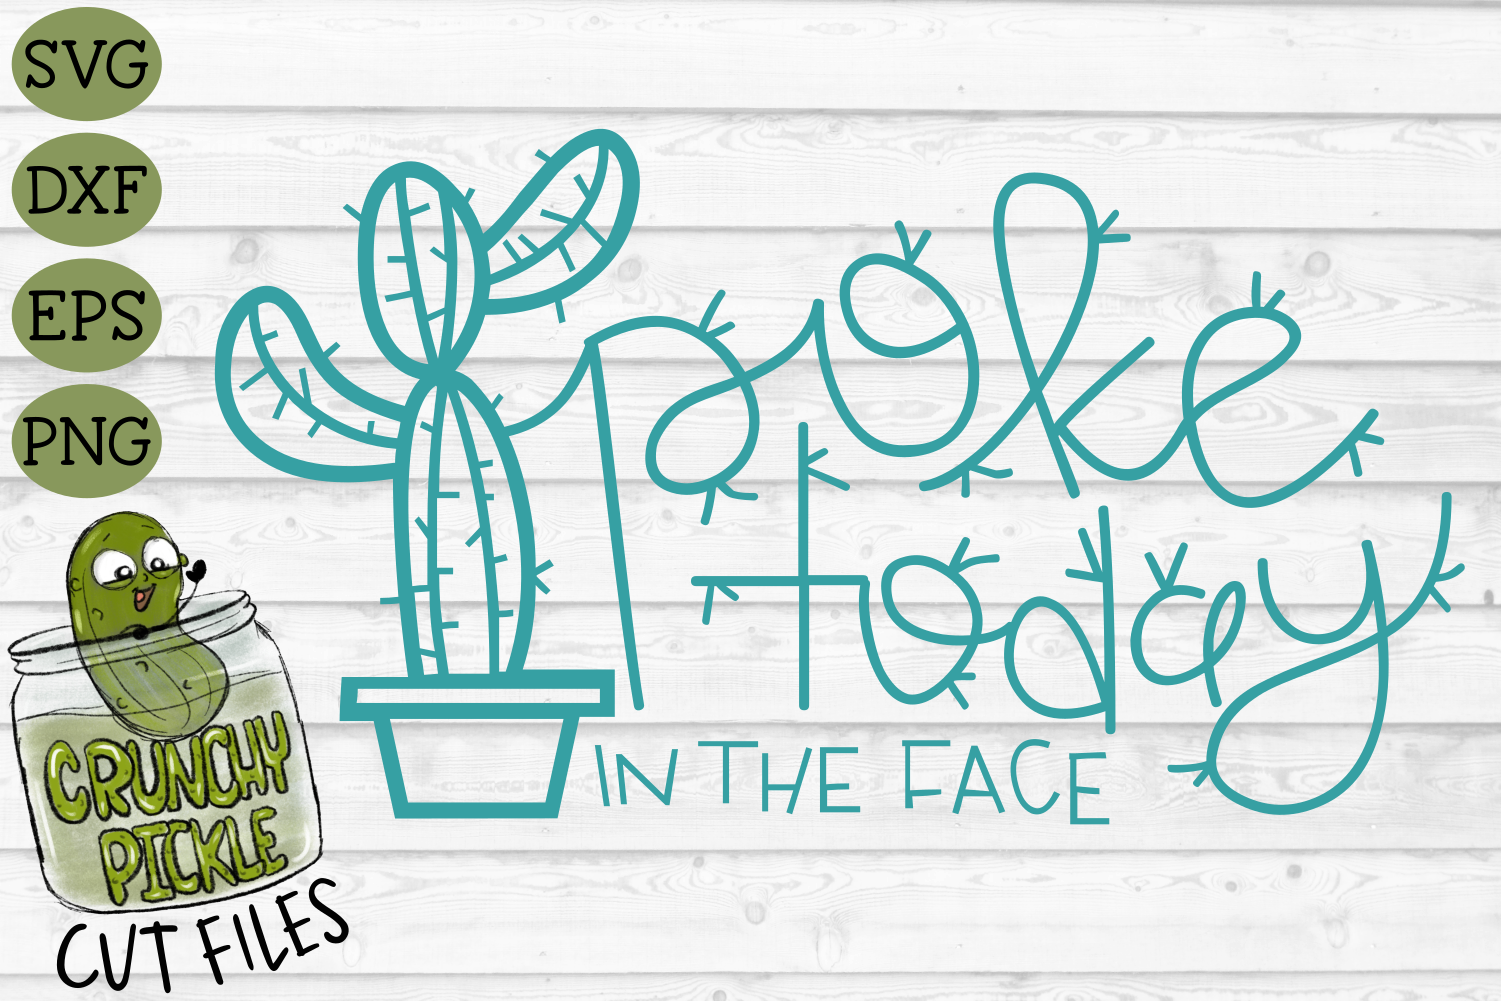 Poke Today In The Face Cactus - A Positive Cactus Pun example image 2